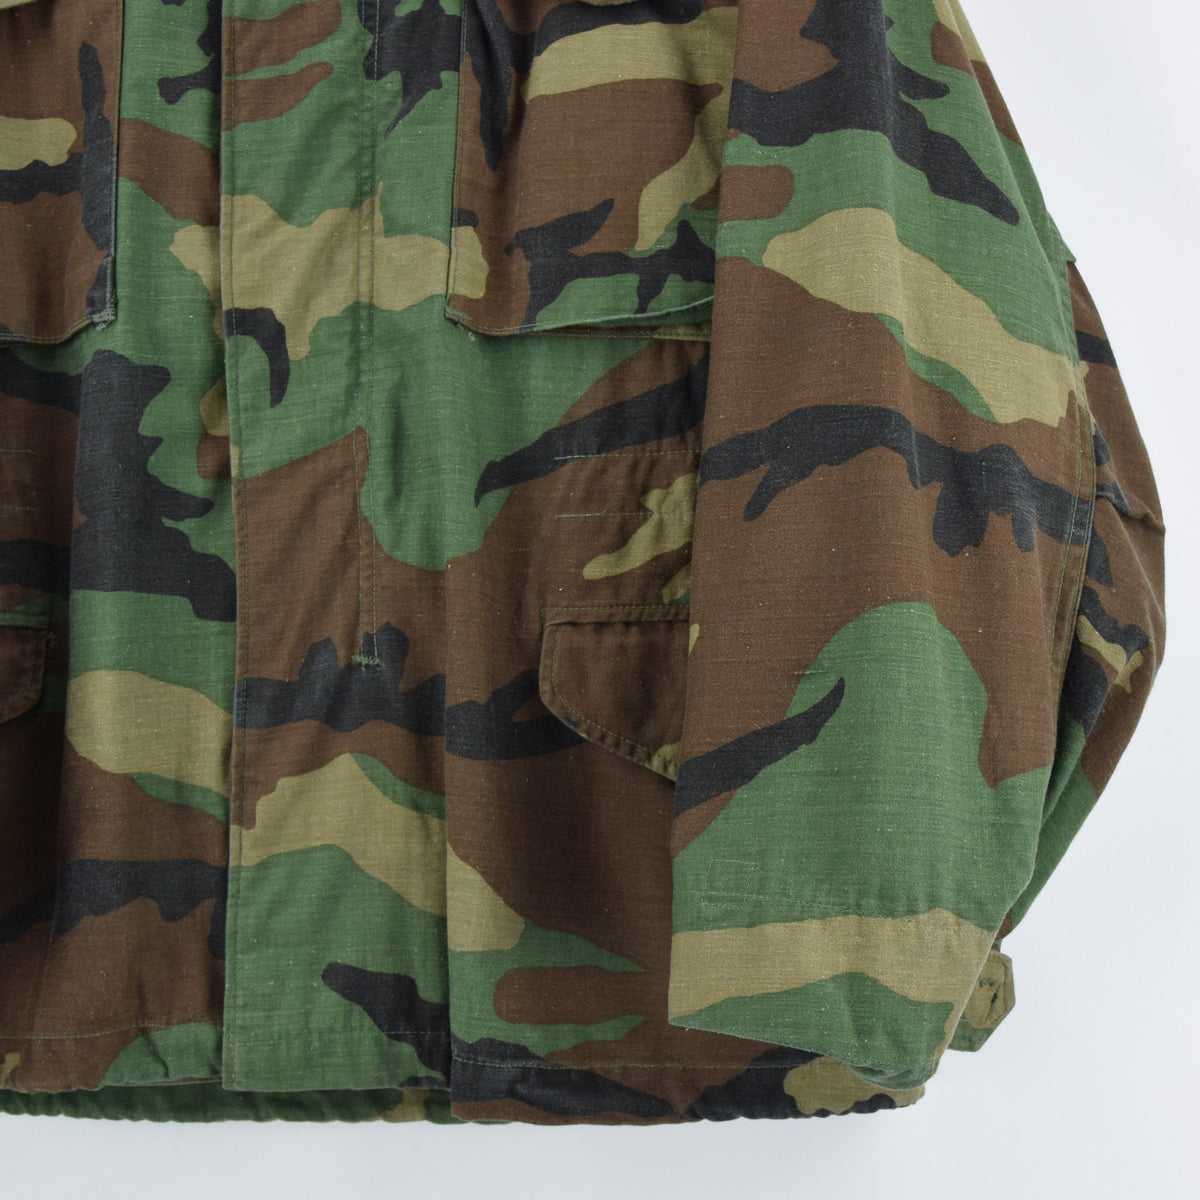 Vintage 80s M-65 Woodland Camouflage Field Coat Military US Air Force Jacket M front hem